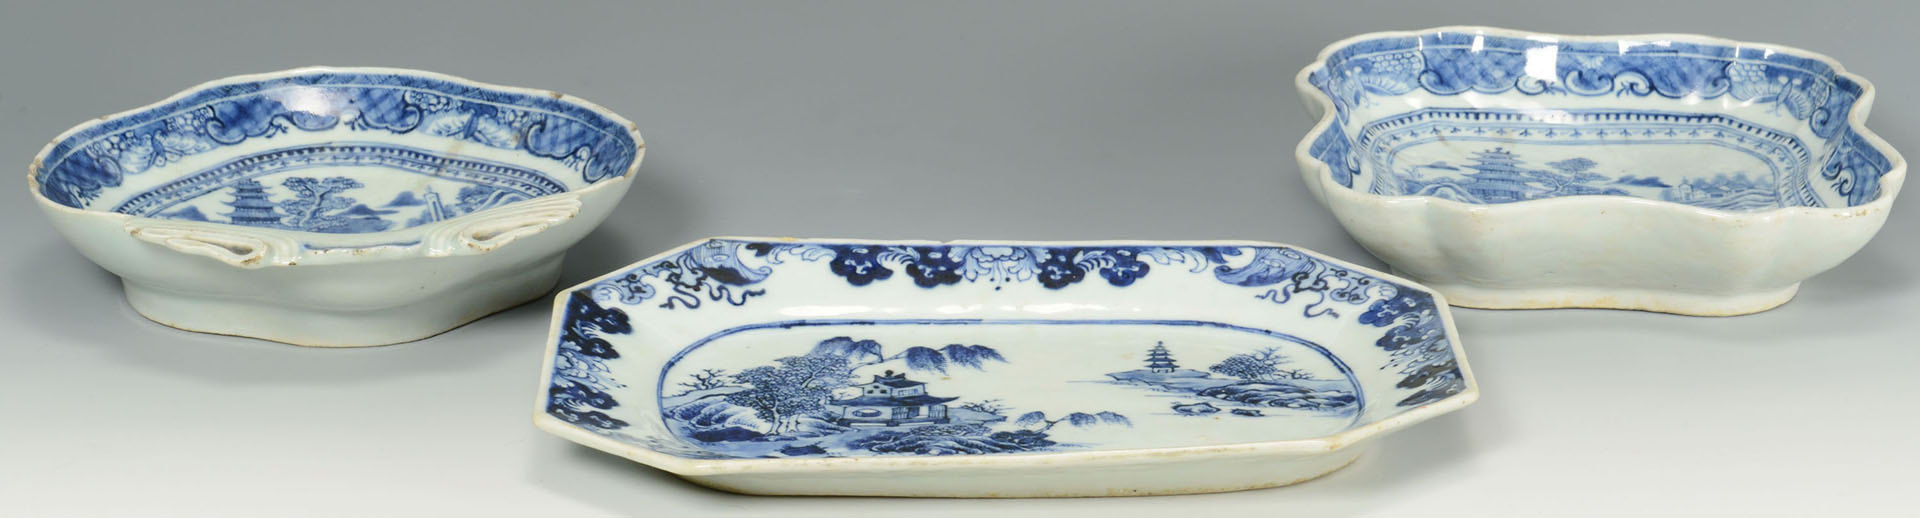 Lot 235: 3 Chinese dishes: small platter, shell and square